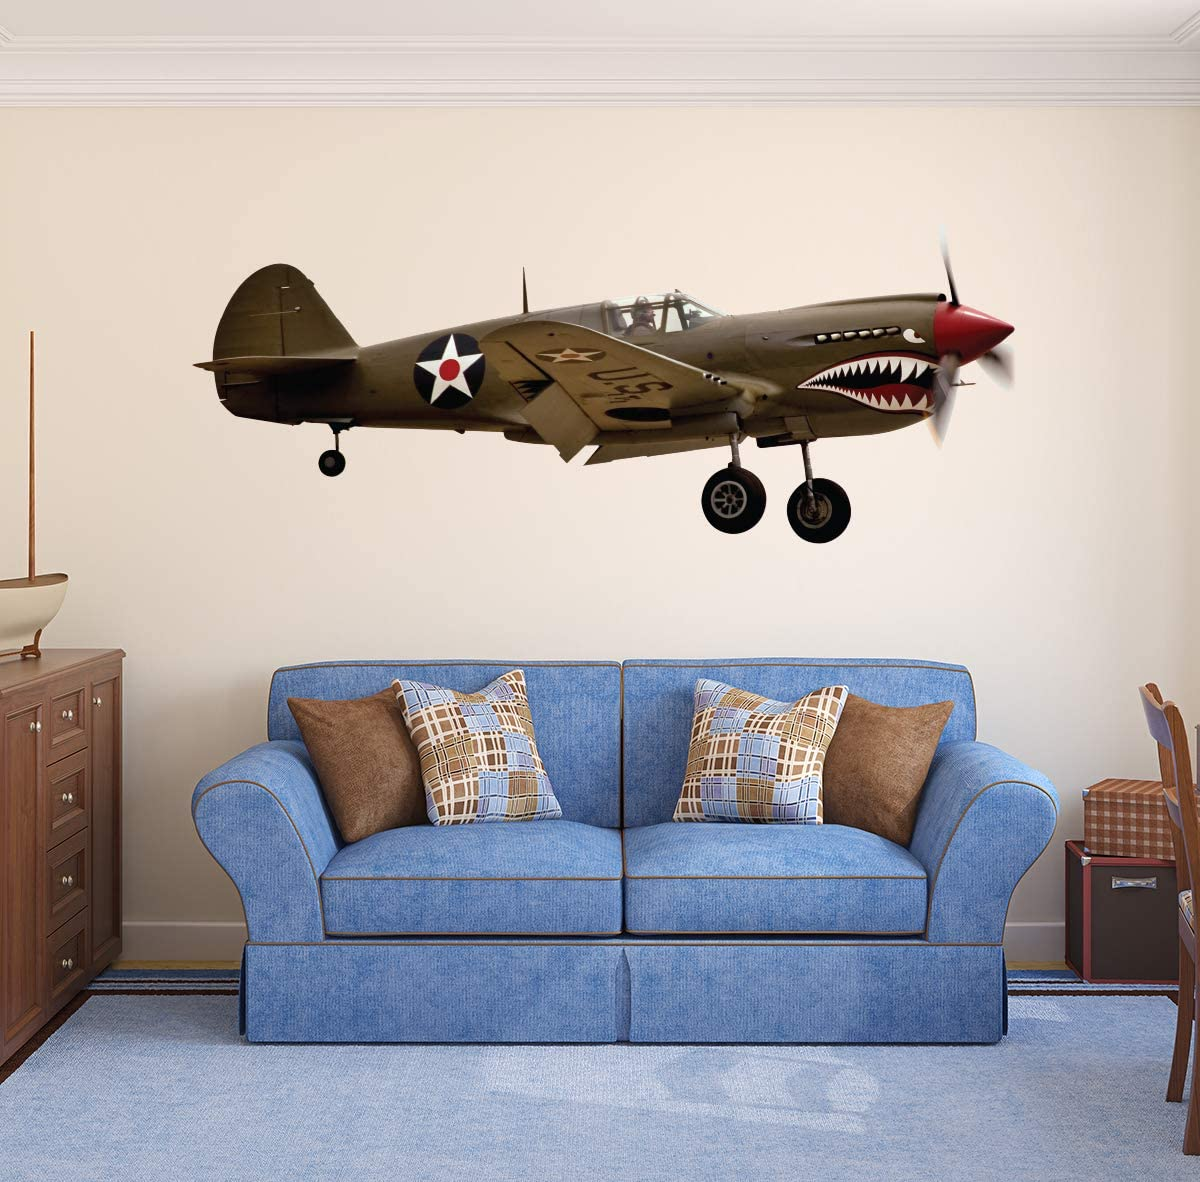 Aircraft Memphis Mall Wall Decal WWII Military World War Airplane Gr Quantity limited Art